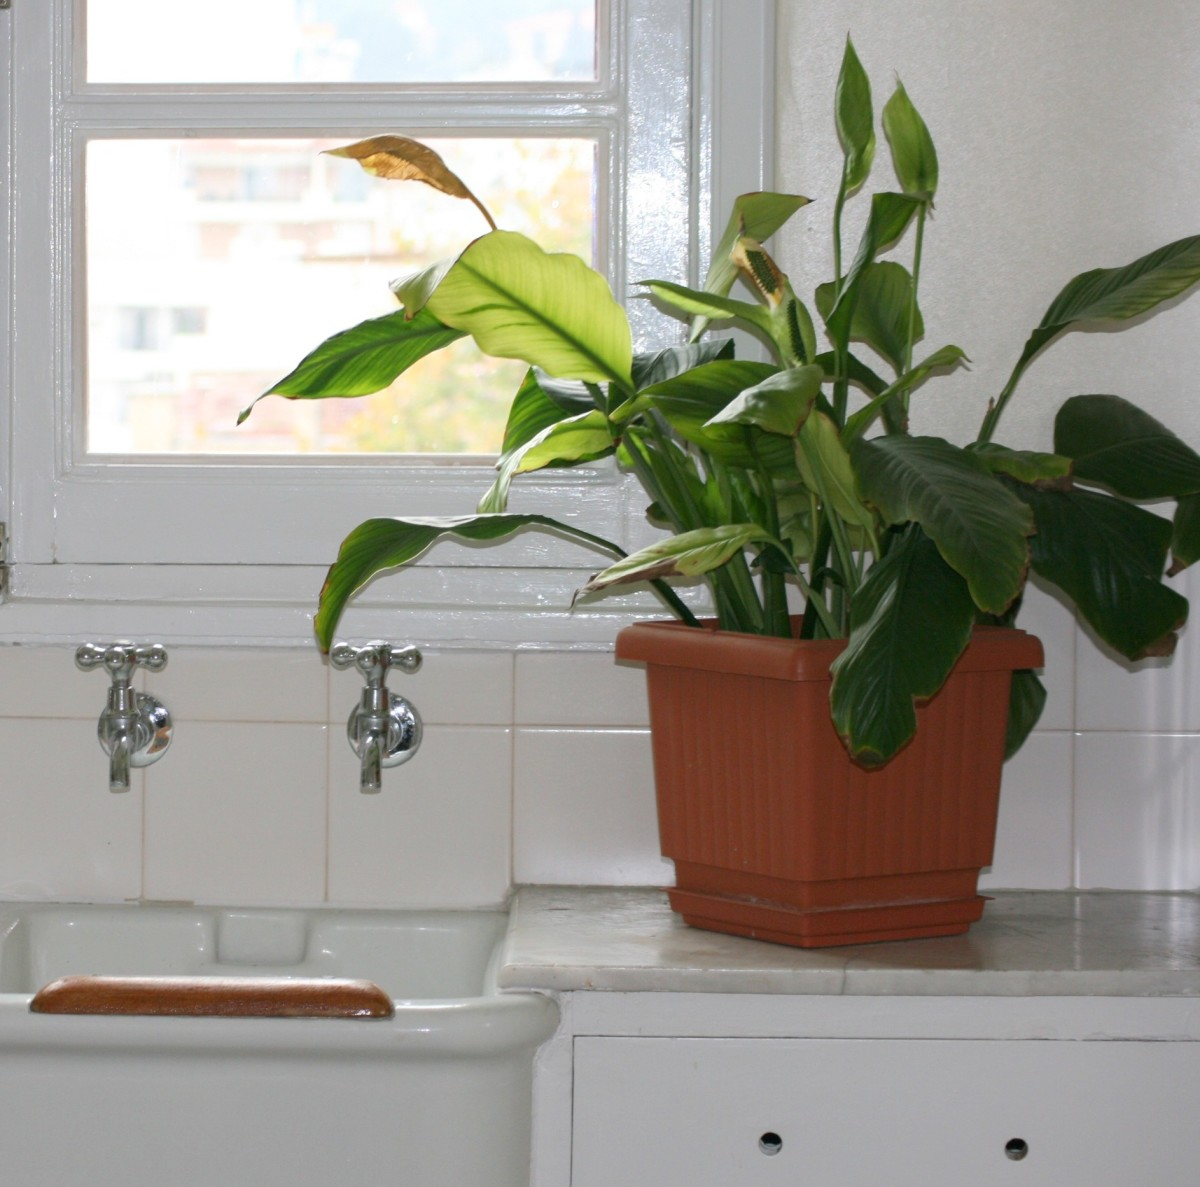 Leafy plants produce moisture from their leaves. Compost in flower pots is also a moisture source